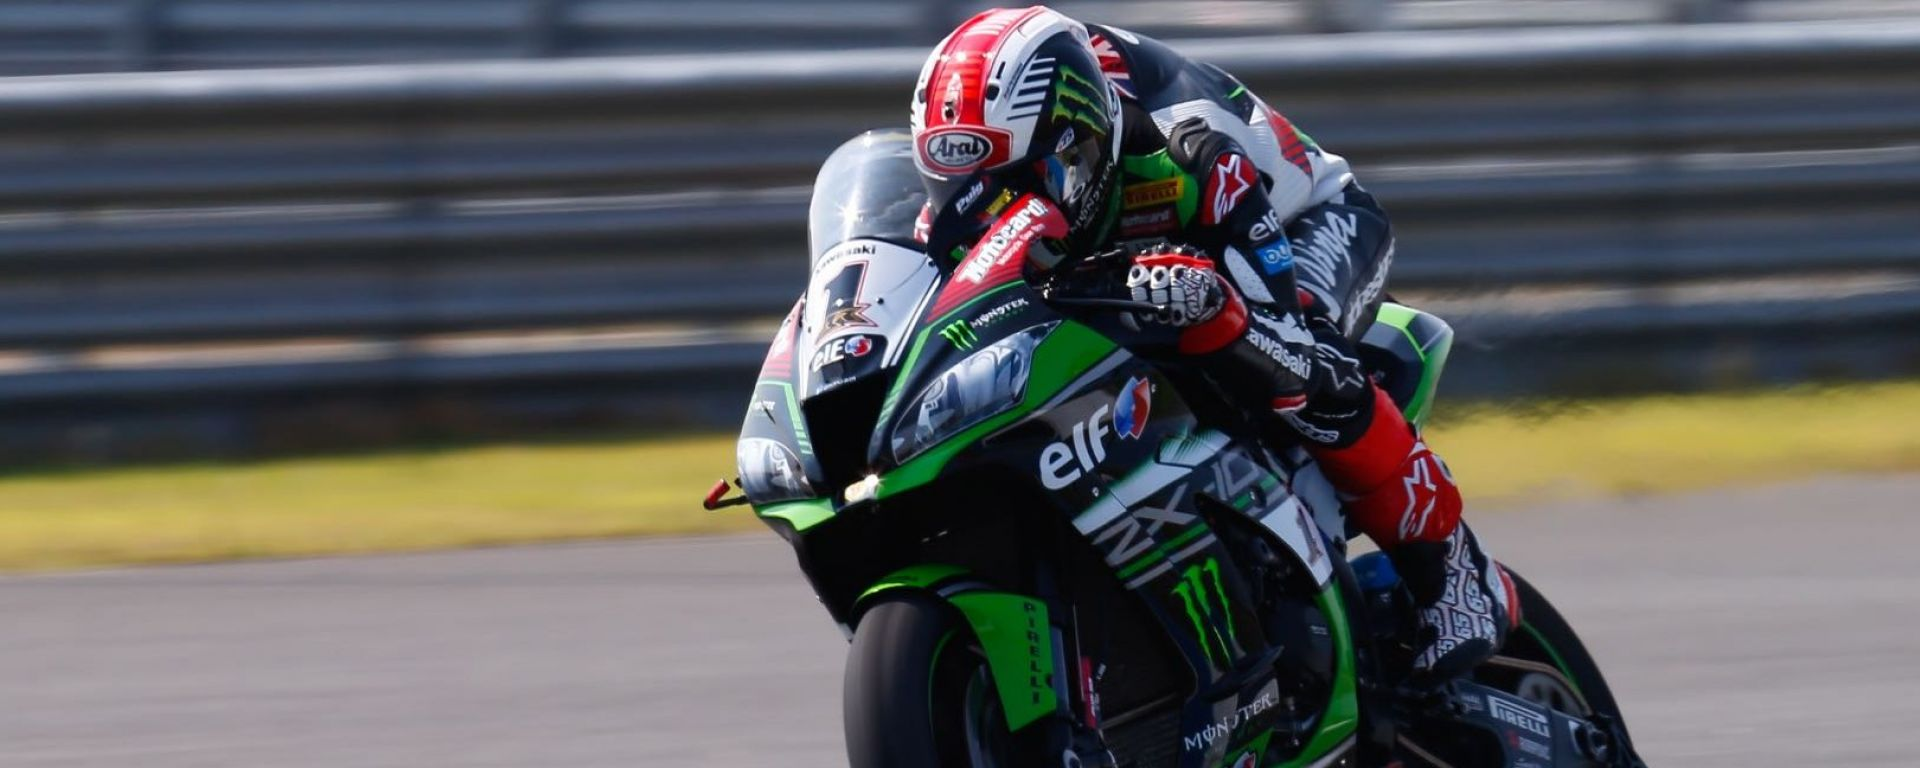 SBK Magny Cours, Jonathan Rea